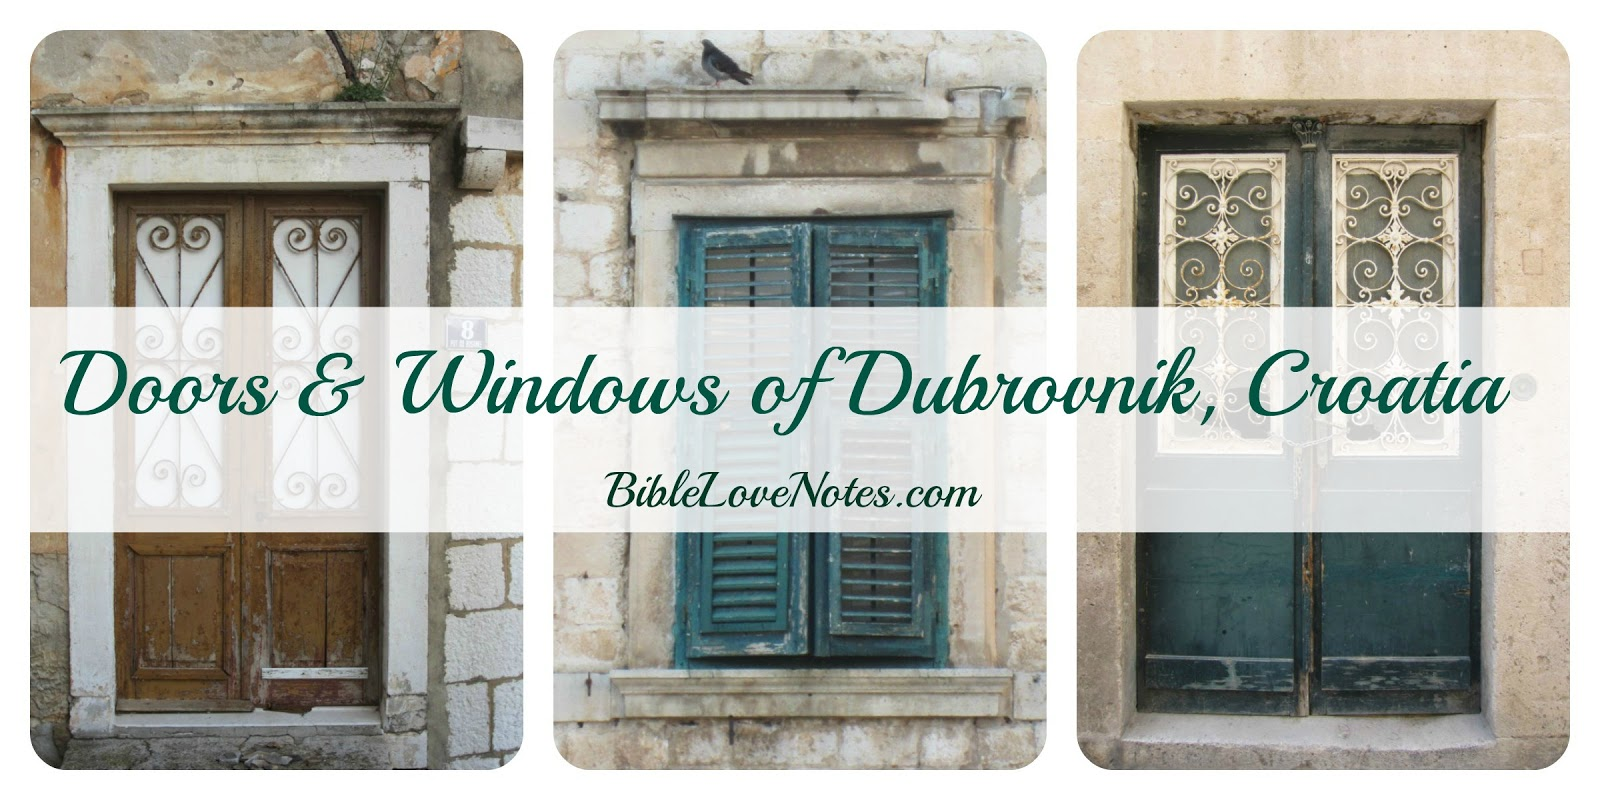 When we visit European cities I\u0027m always fascinated by doors windows shutters and entries and I love snapping photos of them.  sc 1 st  Bible Love Notes & 1-Minute Bible Love Notes: Dubrovnik Doors